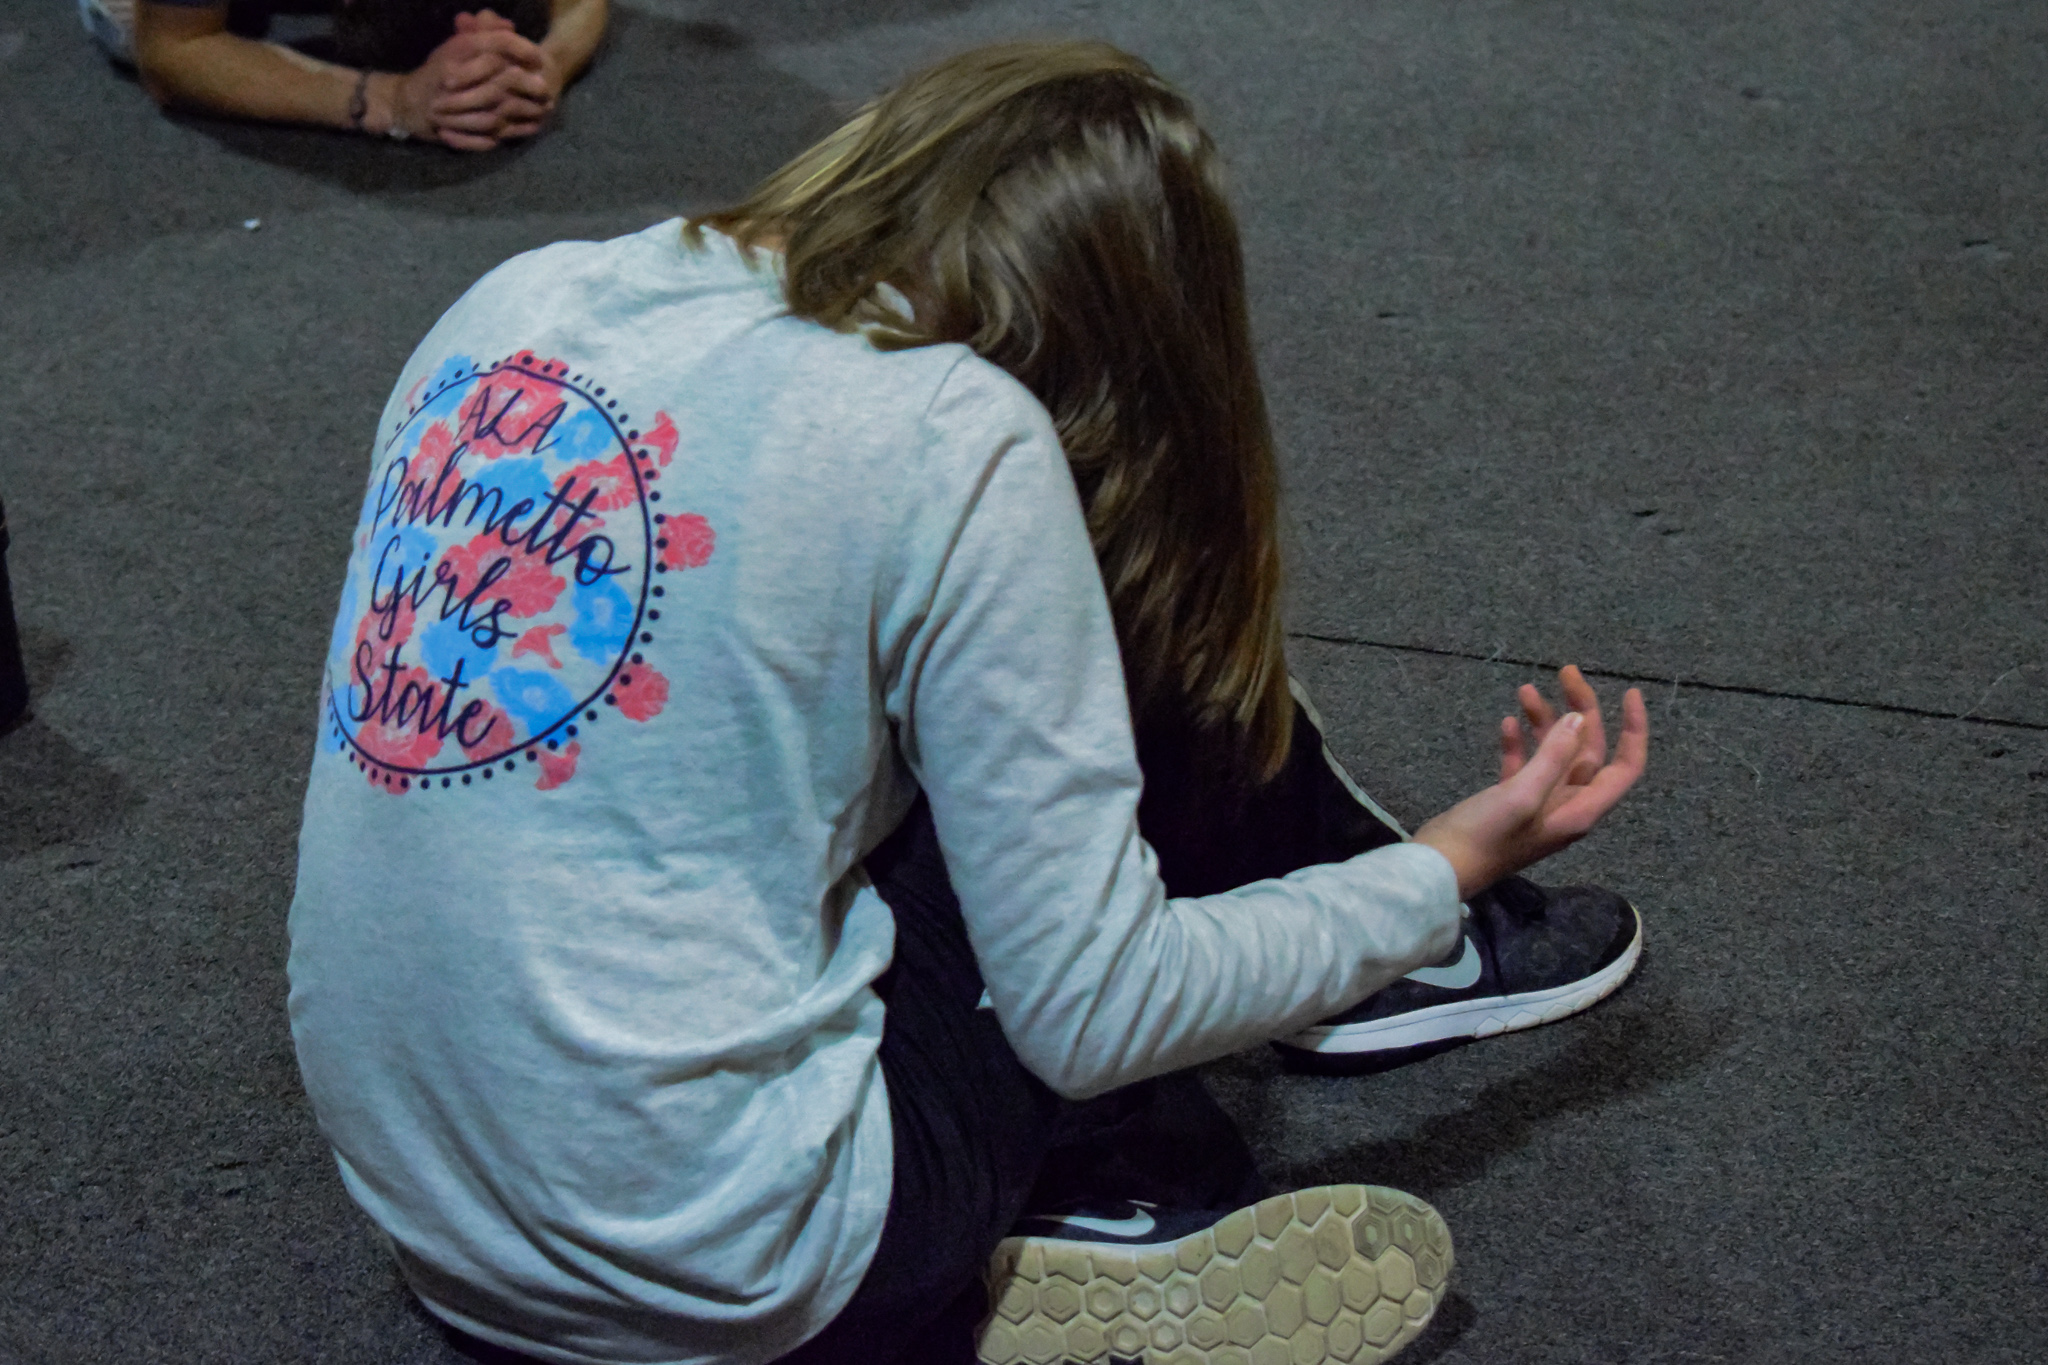 Sophomore, Eden Cassell feels the Spirit moving as they continue to pray over the school and student body.